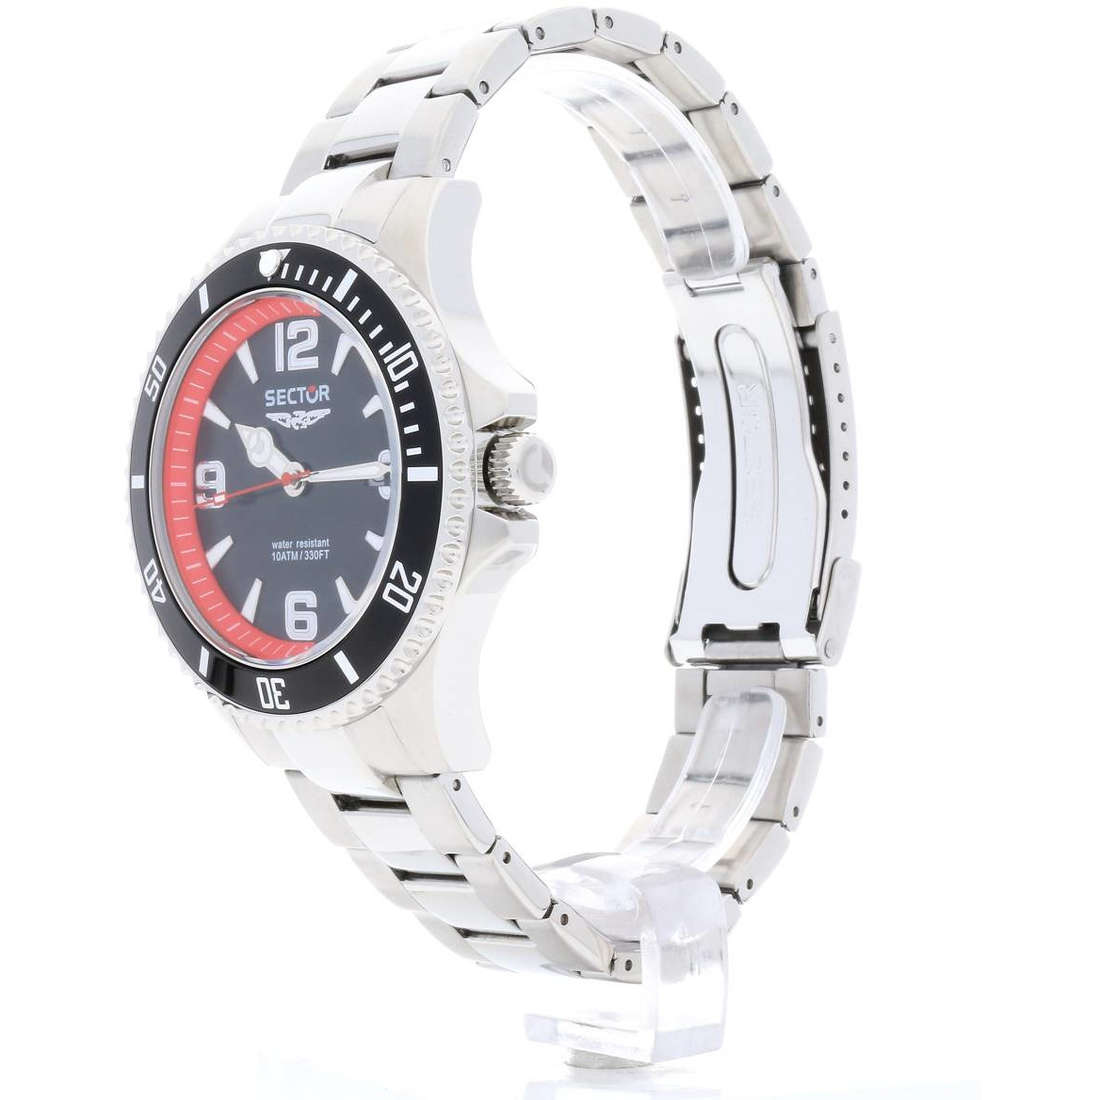 vente montres homme Sector R3253161002